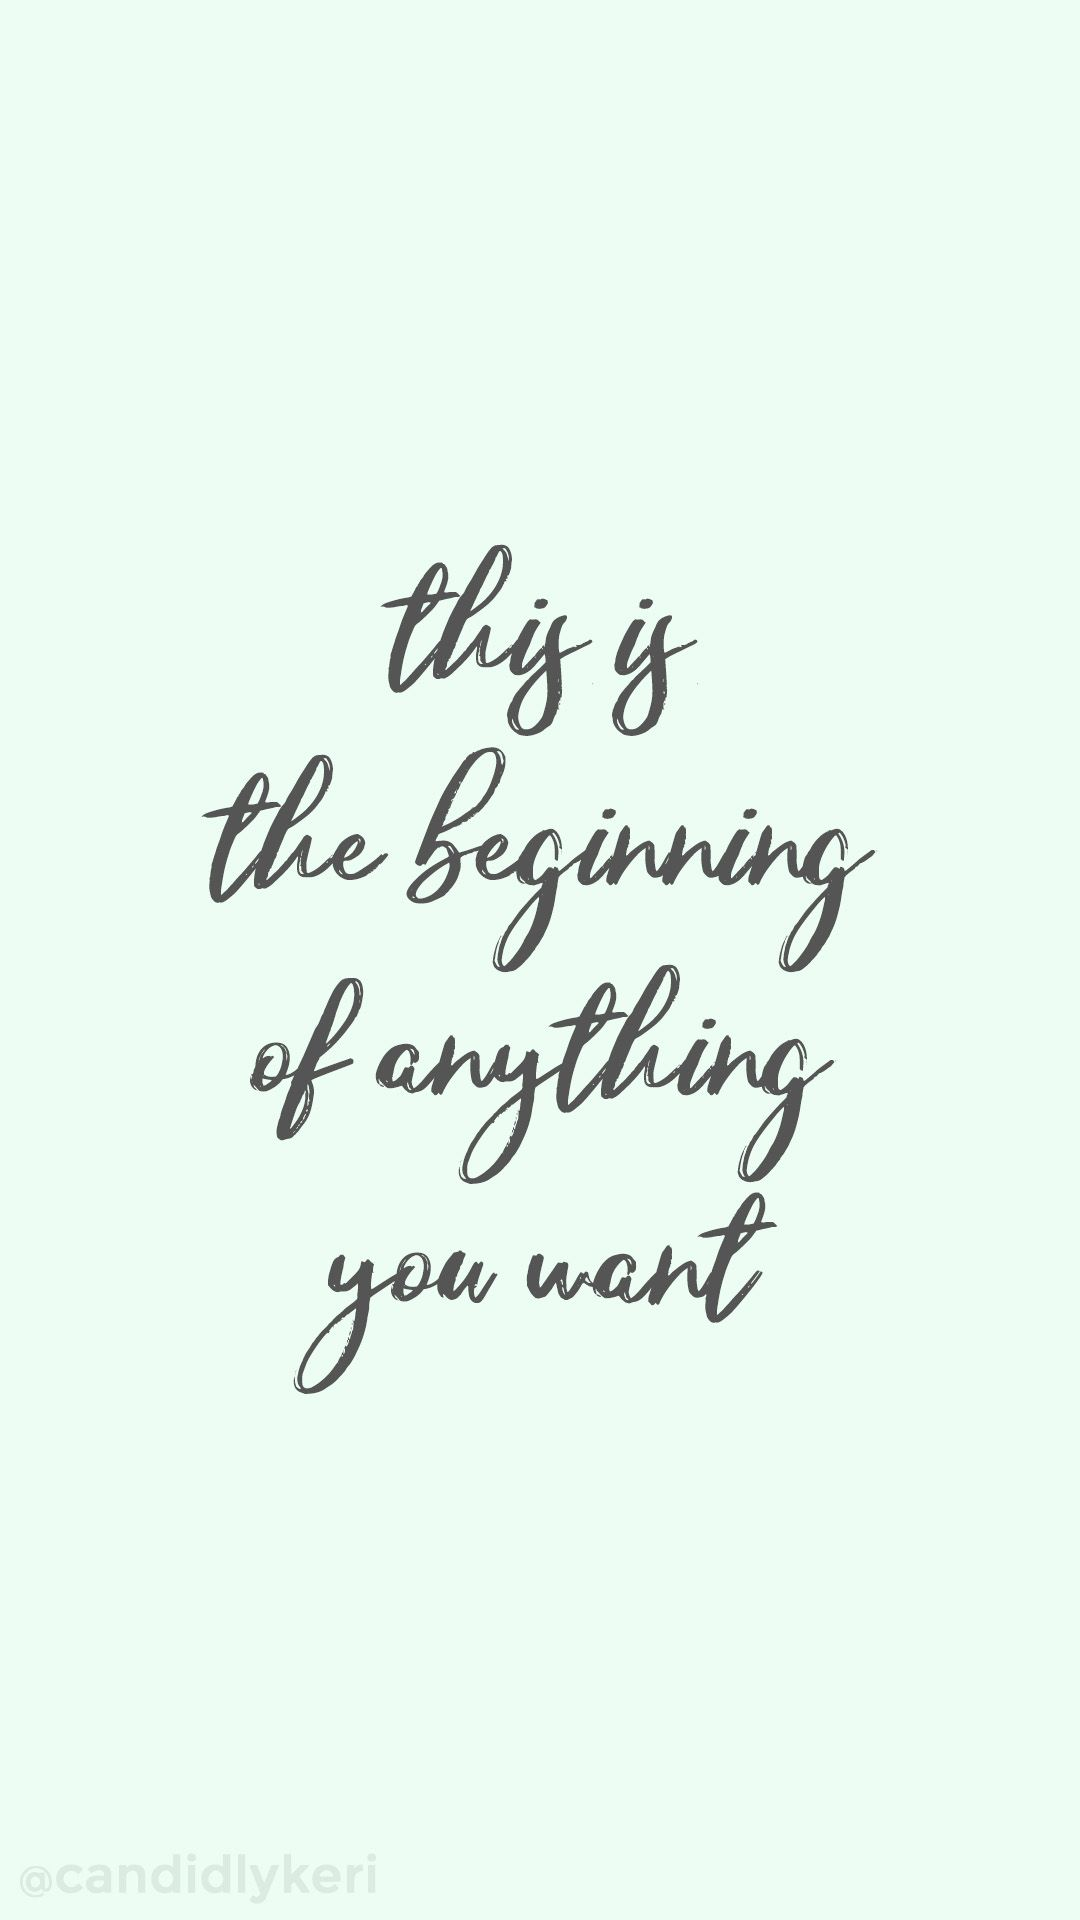 This Is The Beginning Of Anything You Want Inspirational Motivational Quote Typography Backgro Ipad Wallpaper Quotes Wallpaper Iphone Quotes Wallpaper Quotes